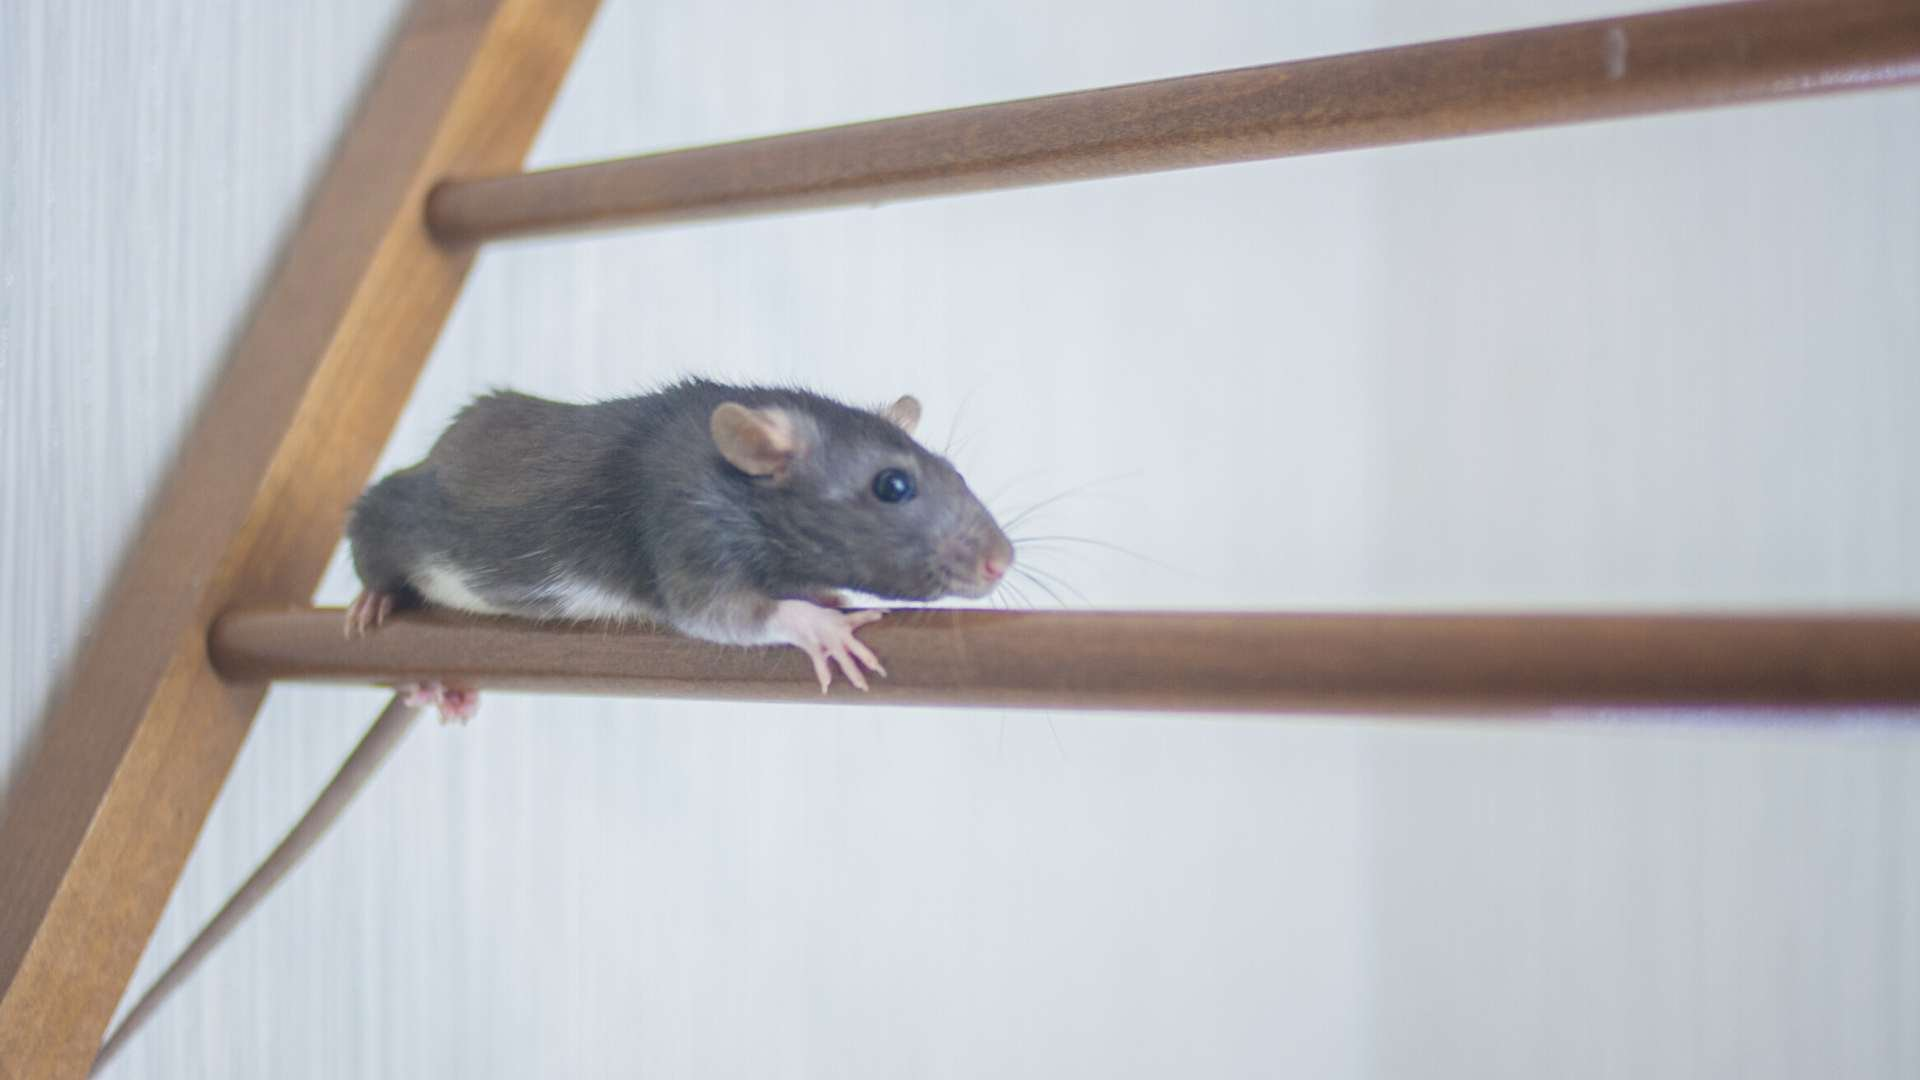 What Surfaces Can Rats Climb